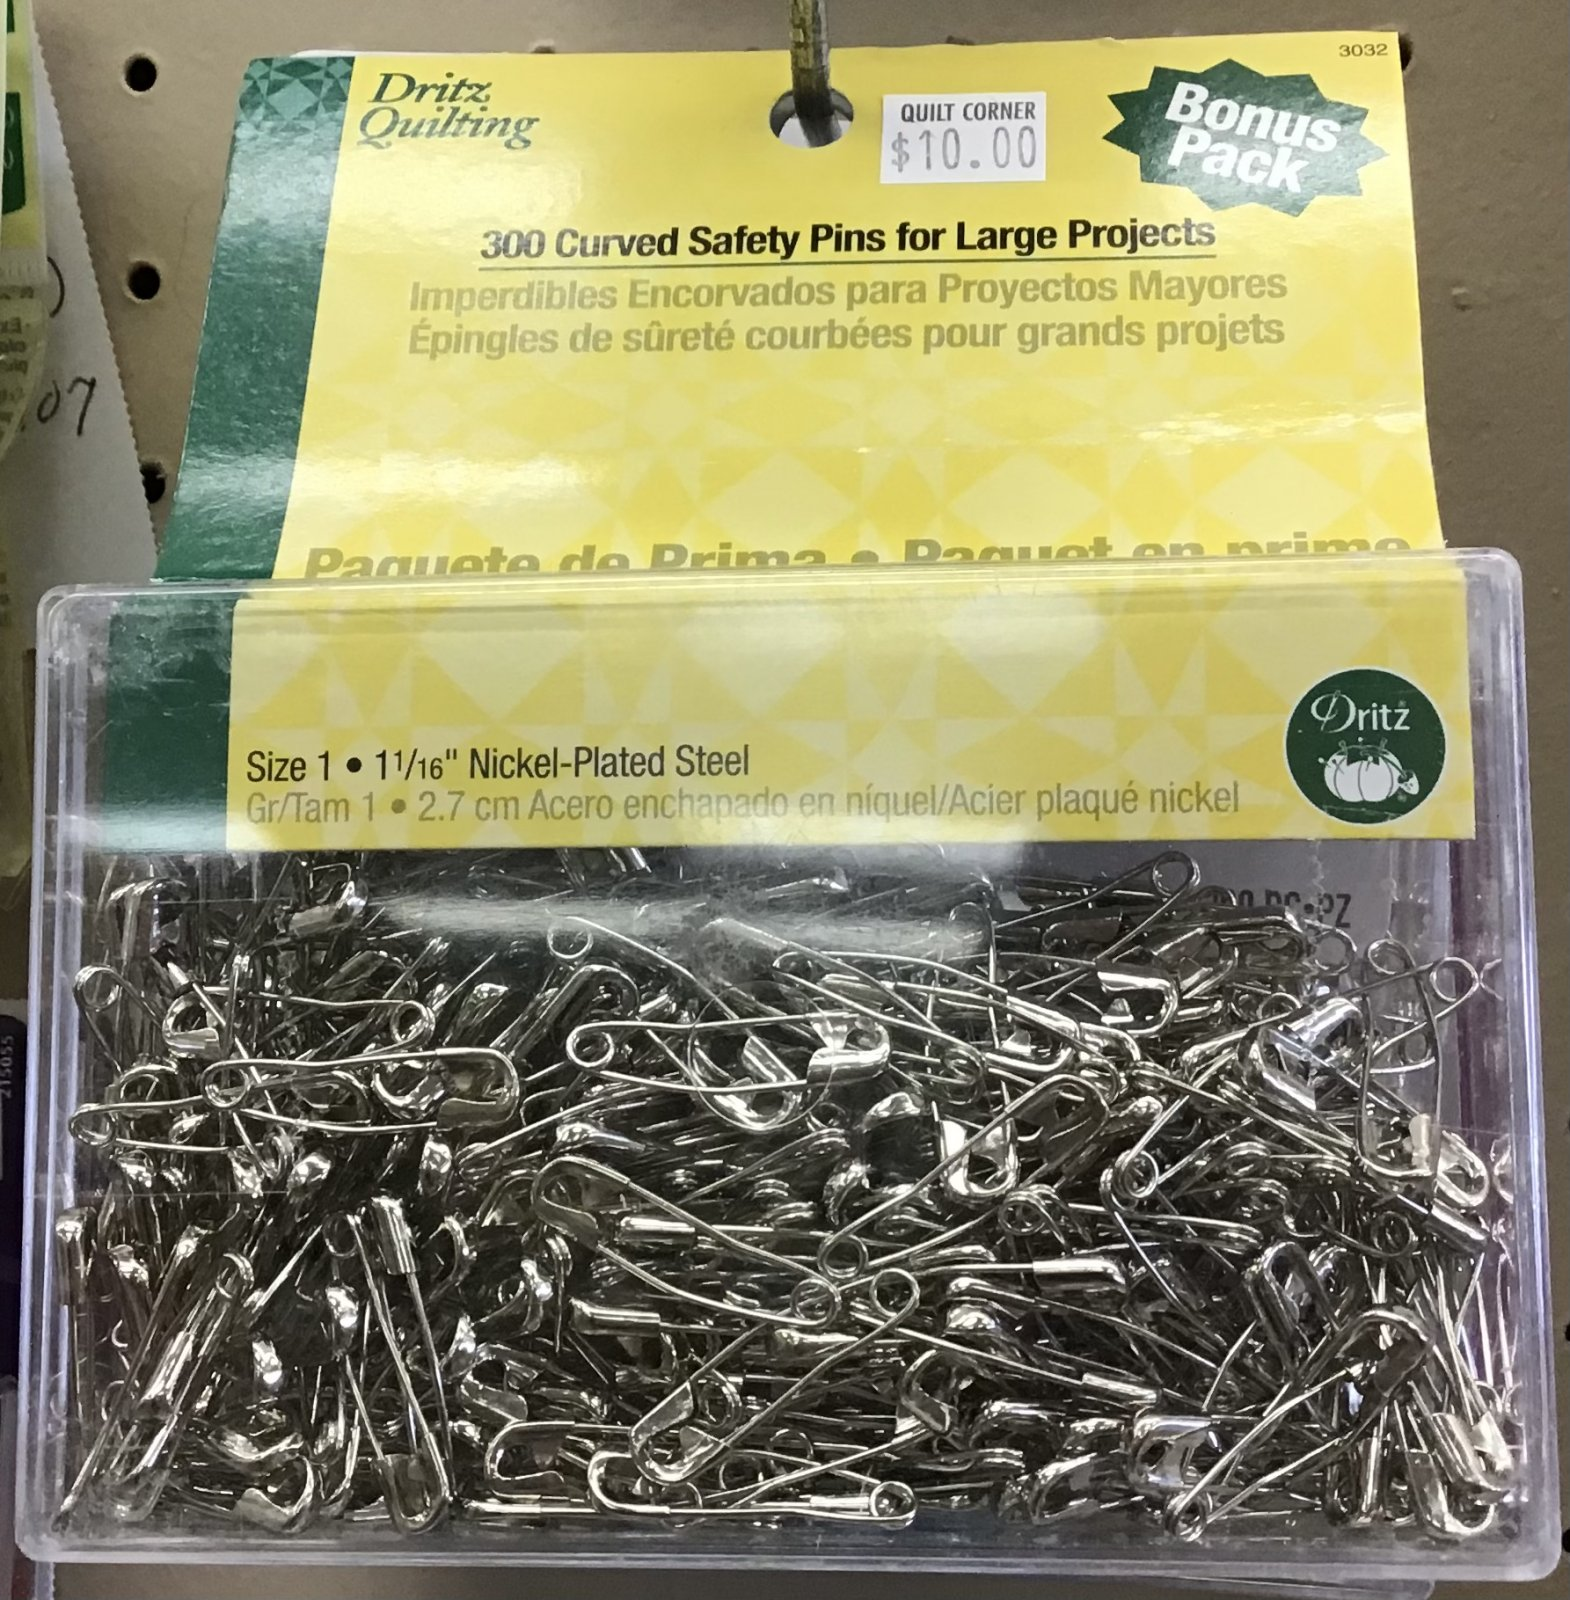 Dritz Curved Safety Pins for Large Projects